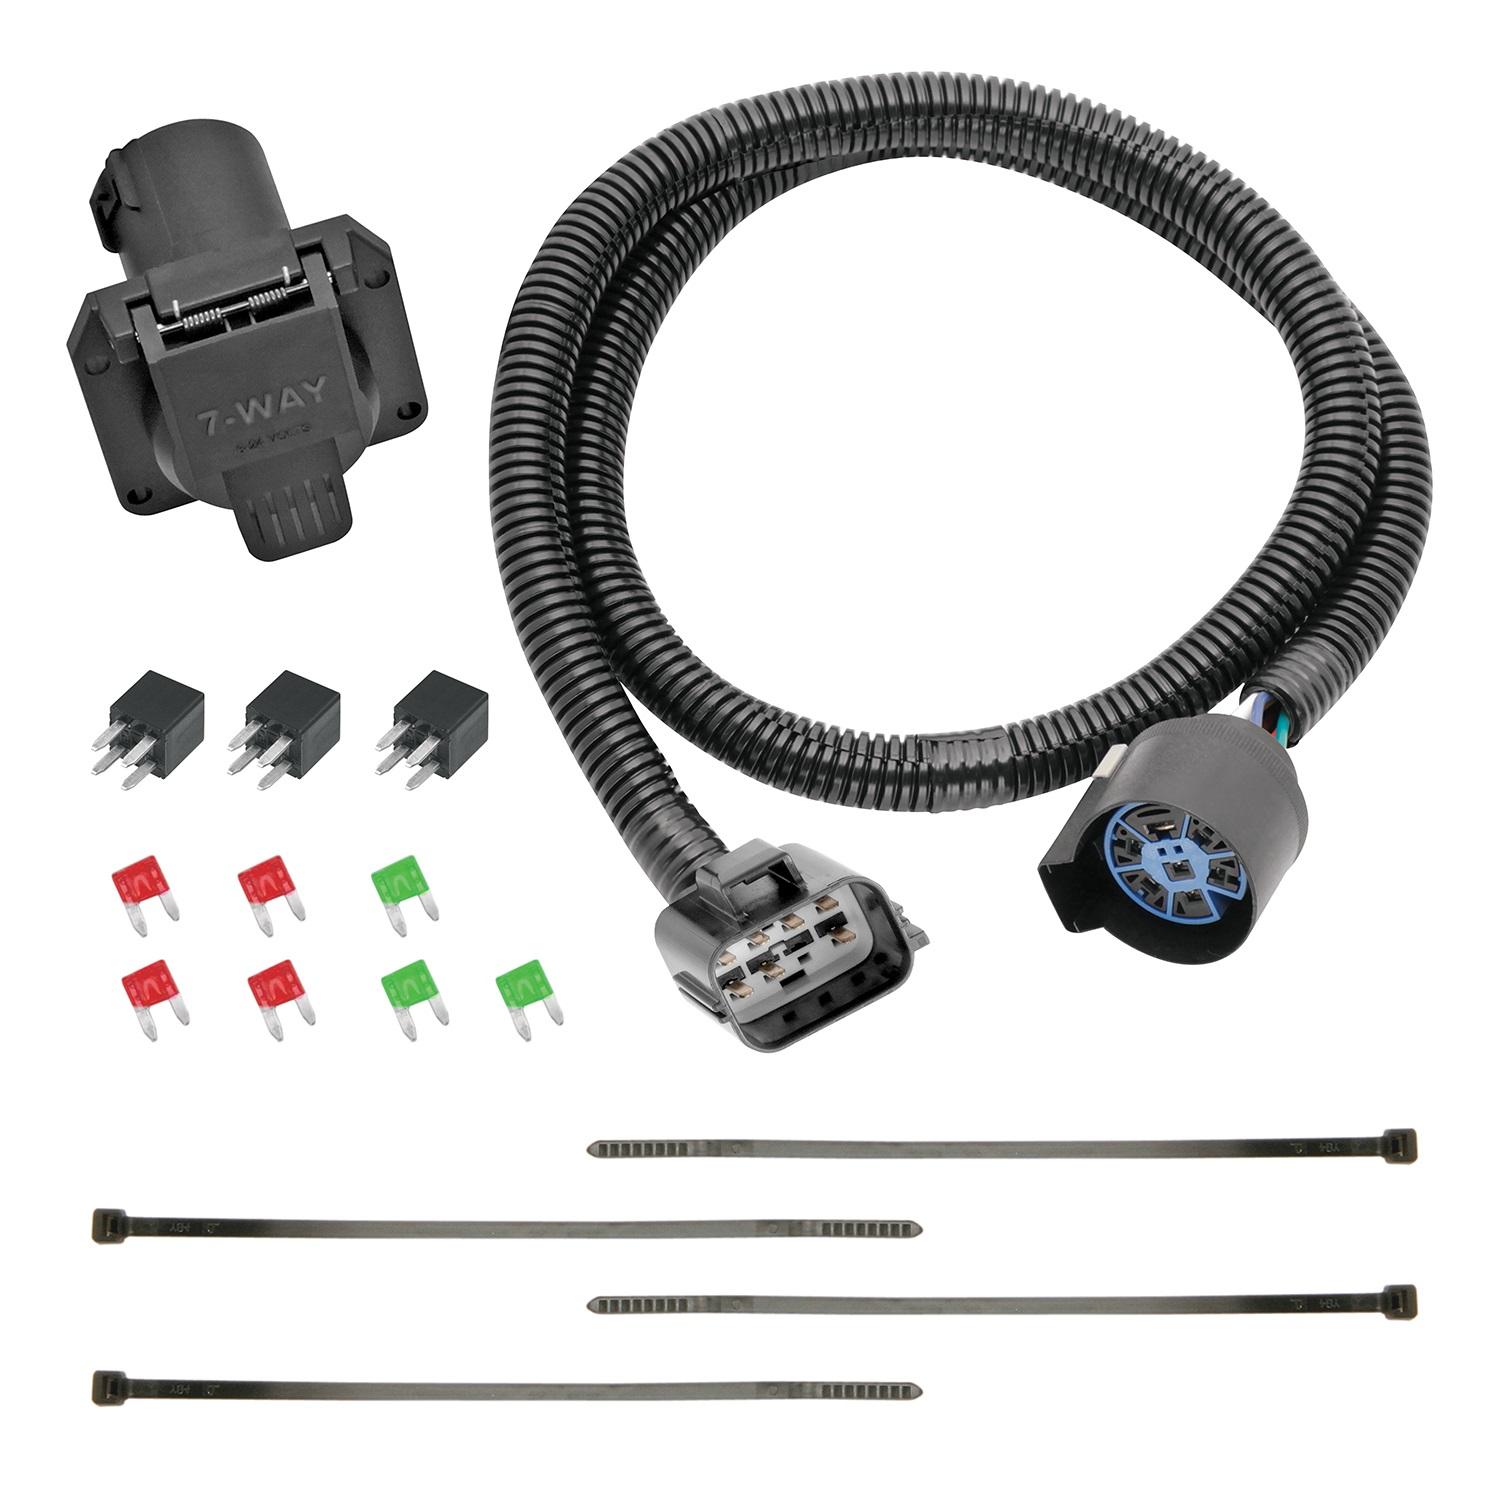 hight resolution of 13 c acadia enclave traverse replacement oem tow package with 7way round wire harness replacement auto part easy to install walmart com